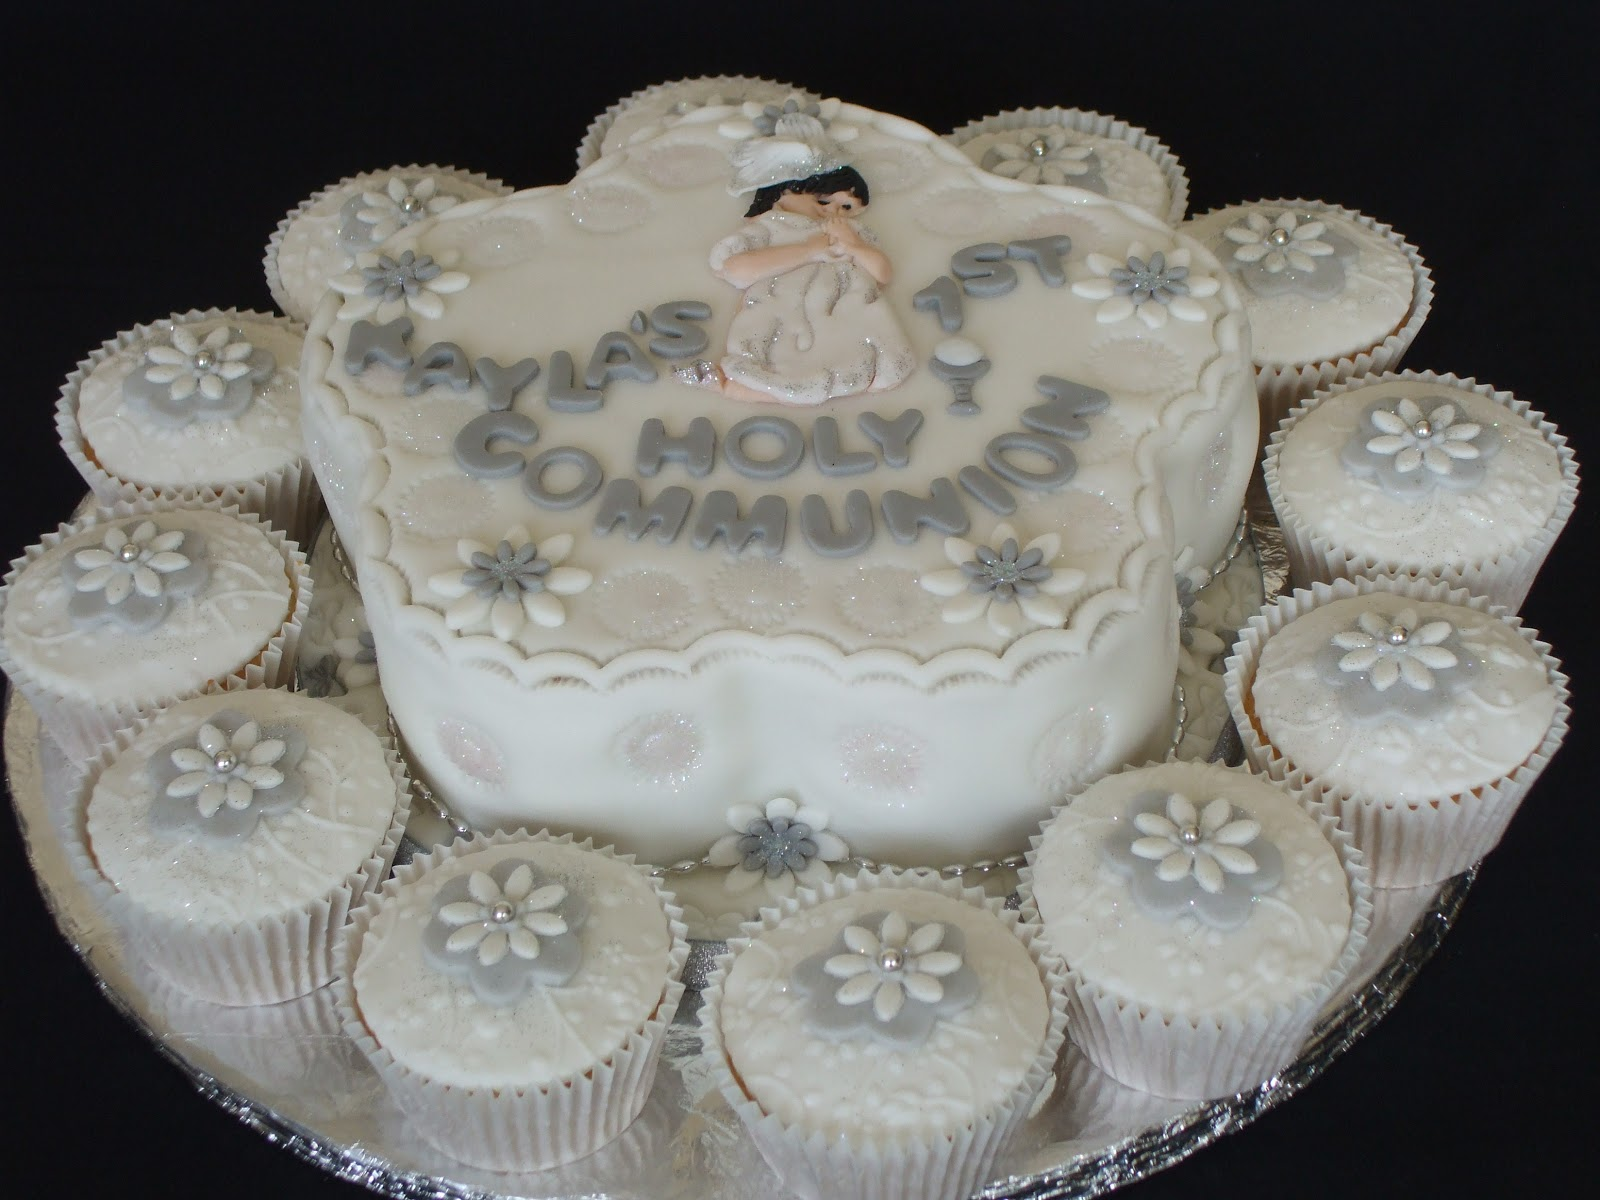 Cakes by Candy: 02/01/2013 - 03/01/2013